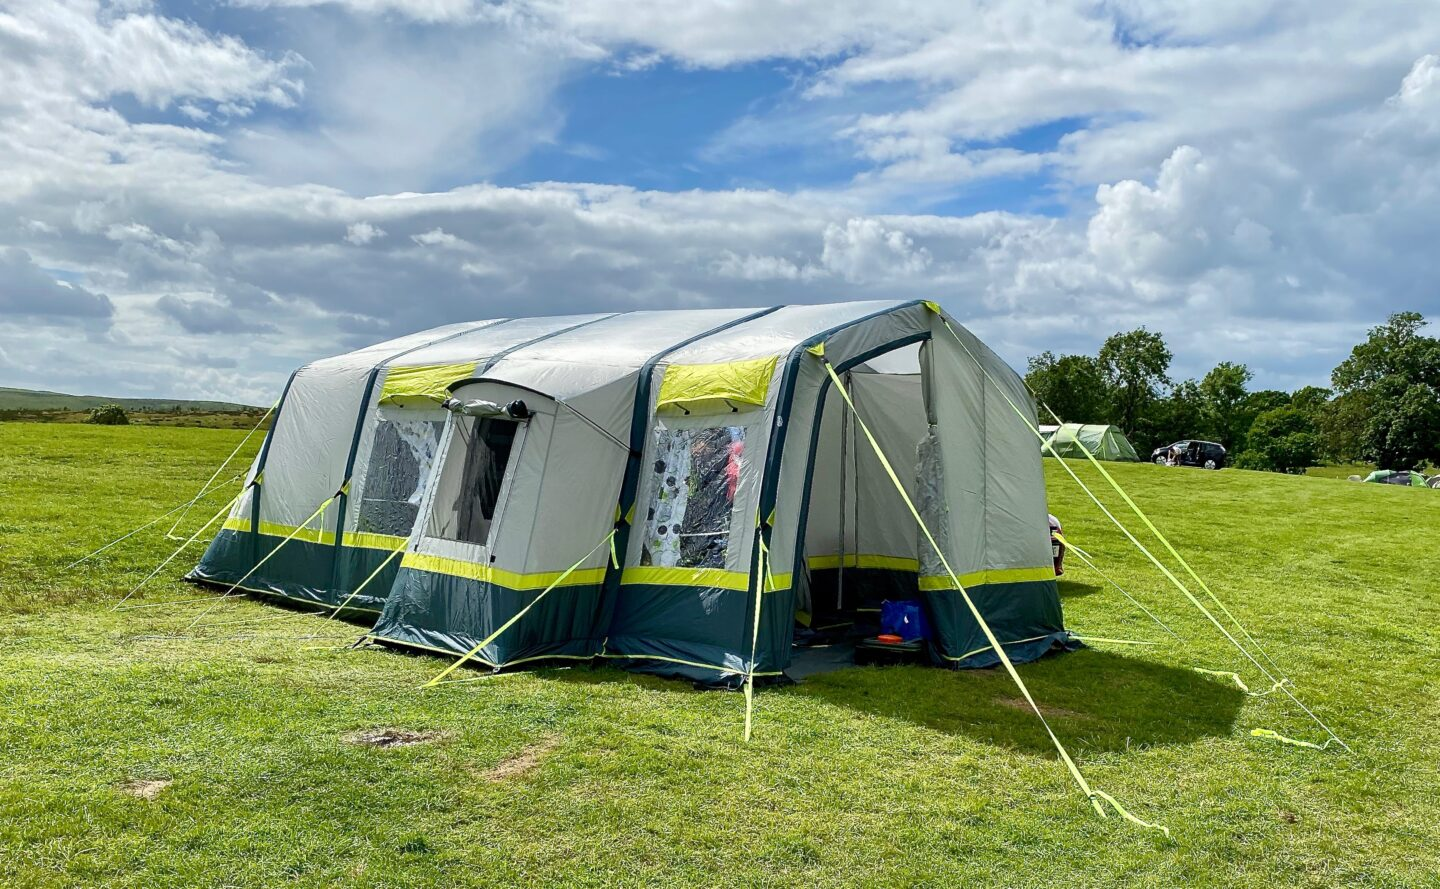 AD: OLPRO Home 5 berth family air tent review